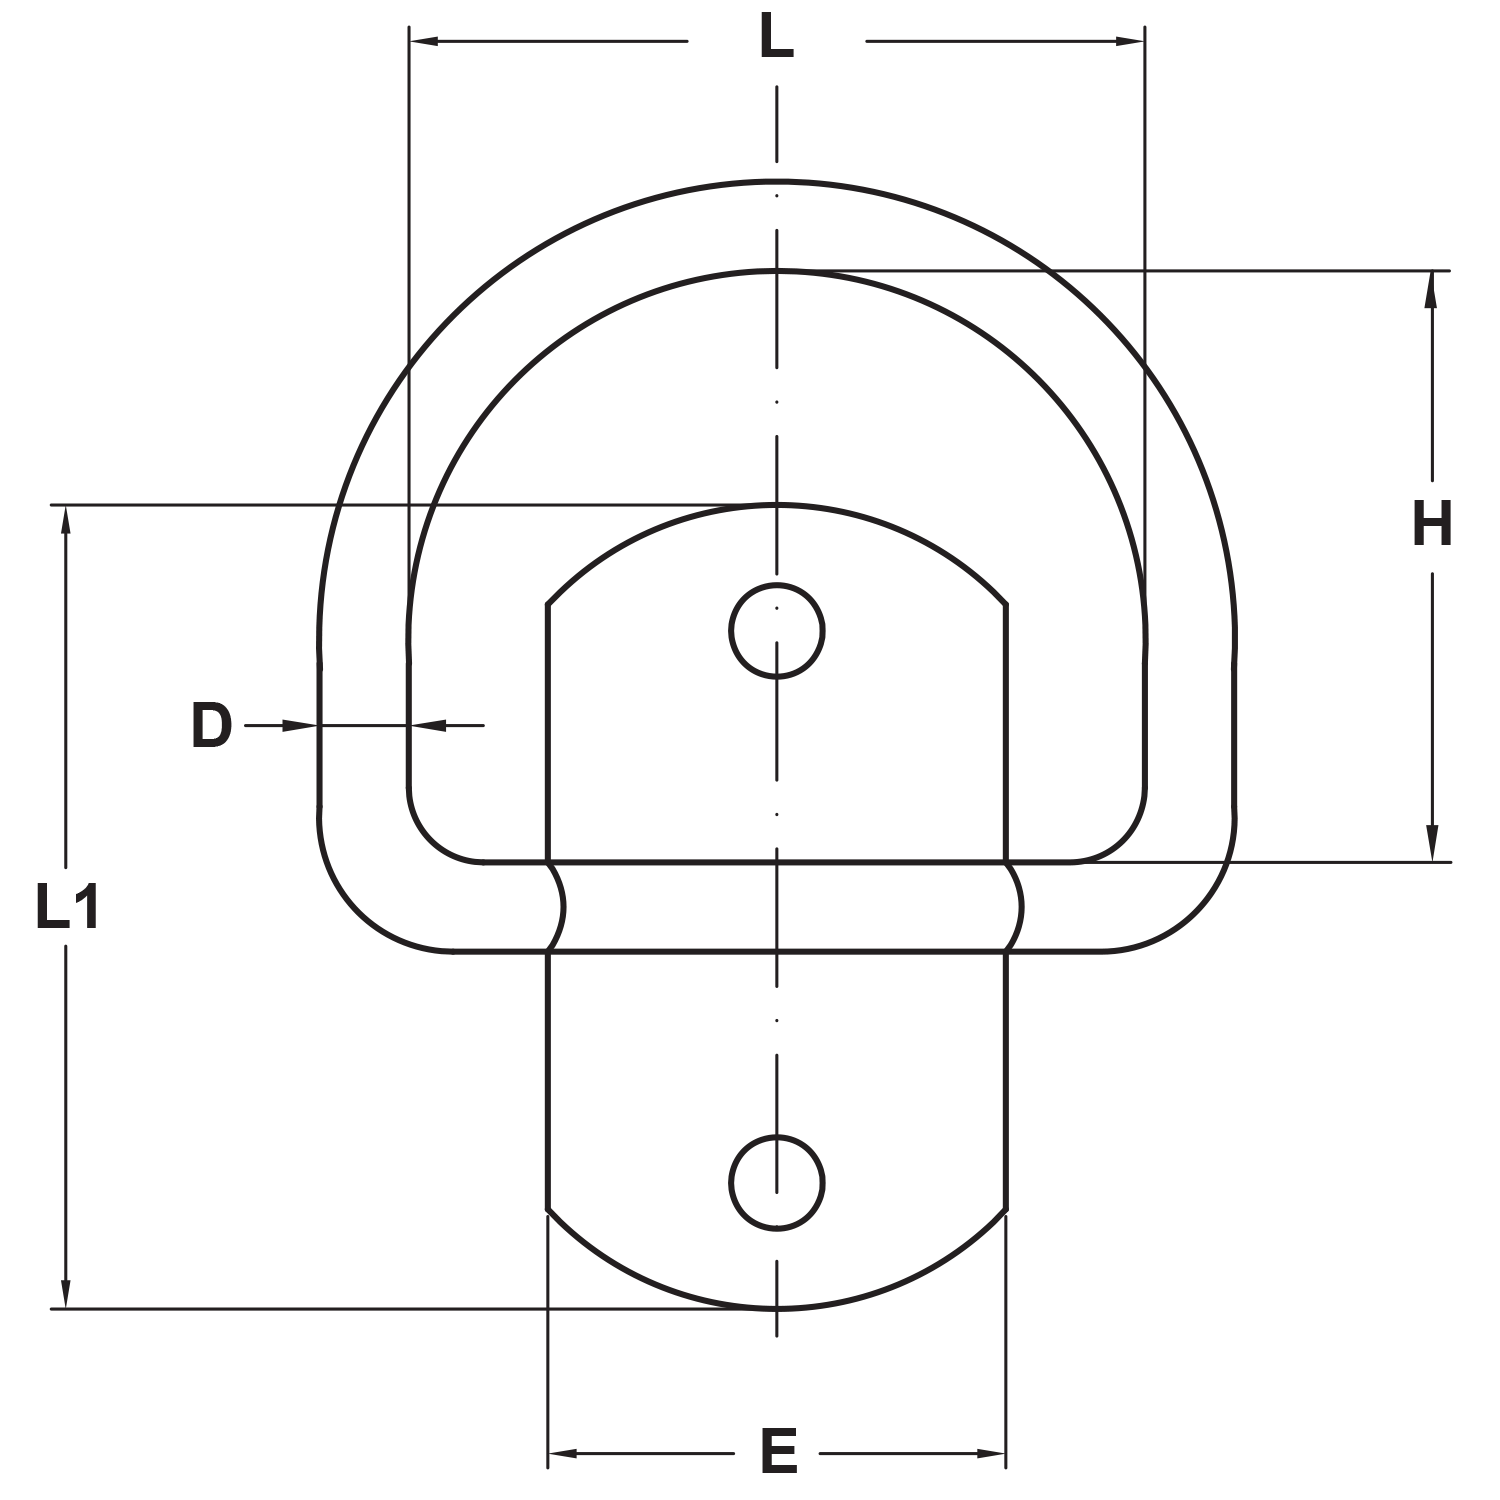 38mm-stainless-steel-d-ring-clip-diagram